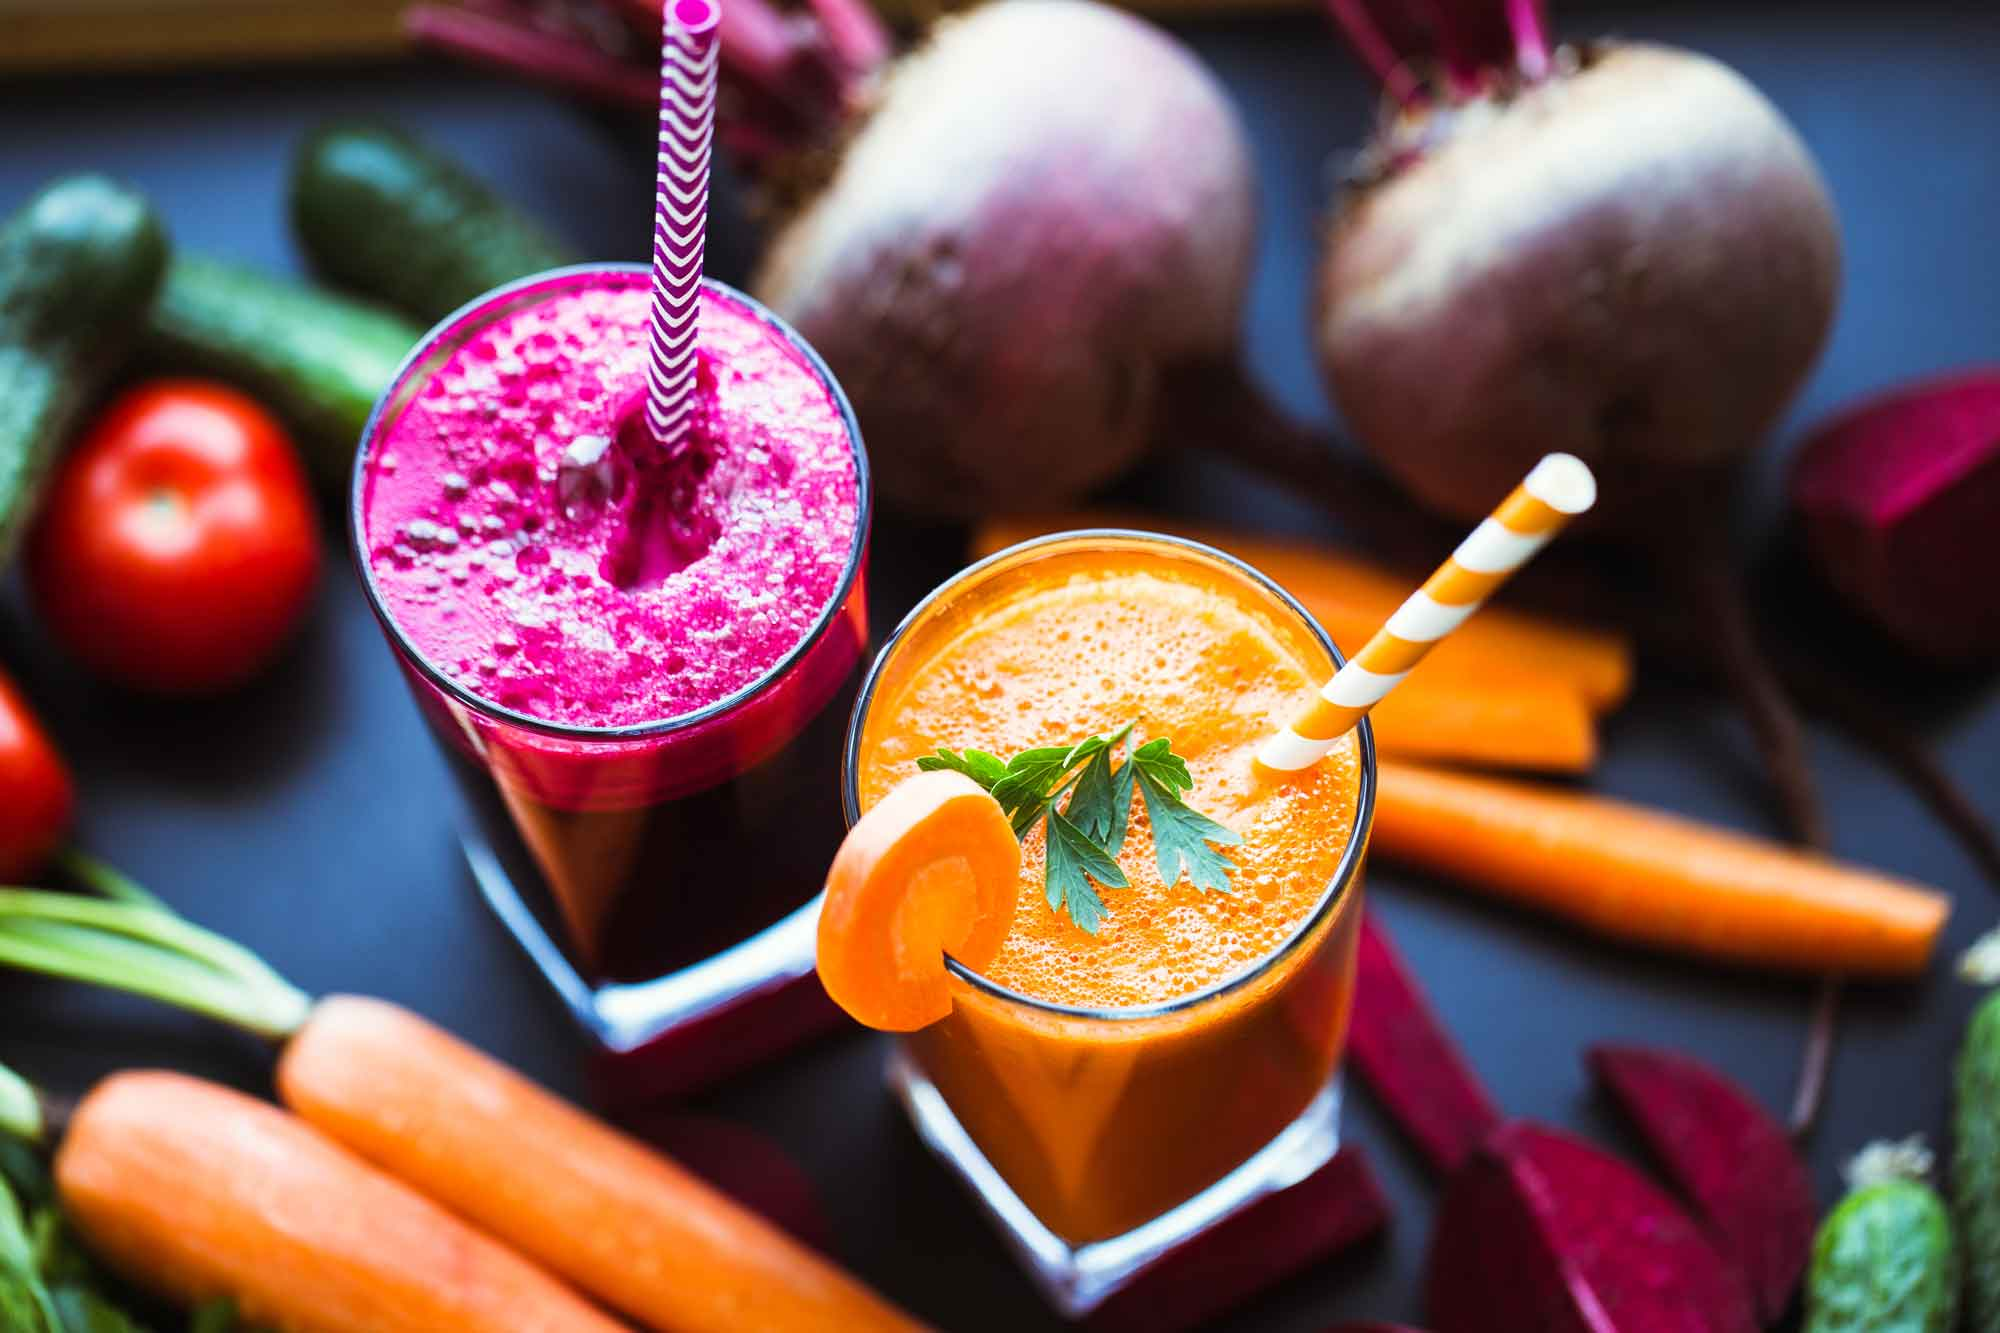 freshly-made-vegetable-juices-carrot-beet-vegetari-PZEJ6ZU